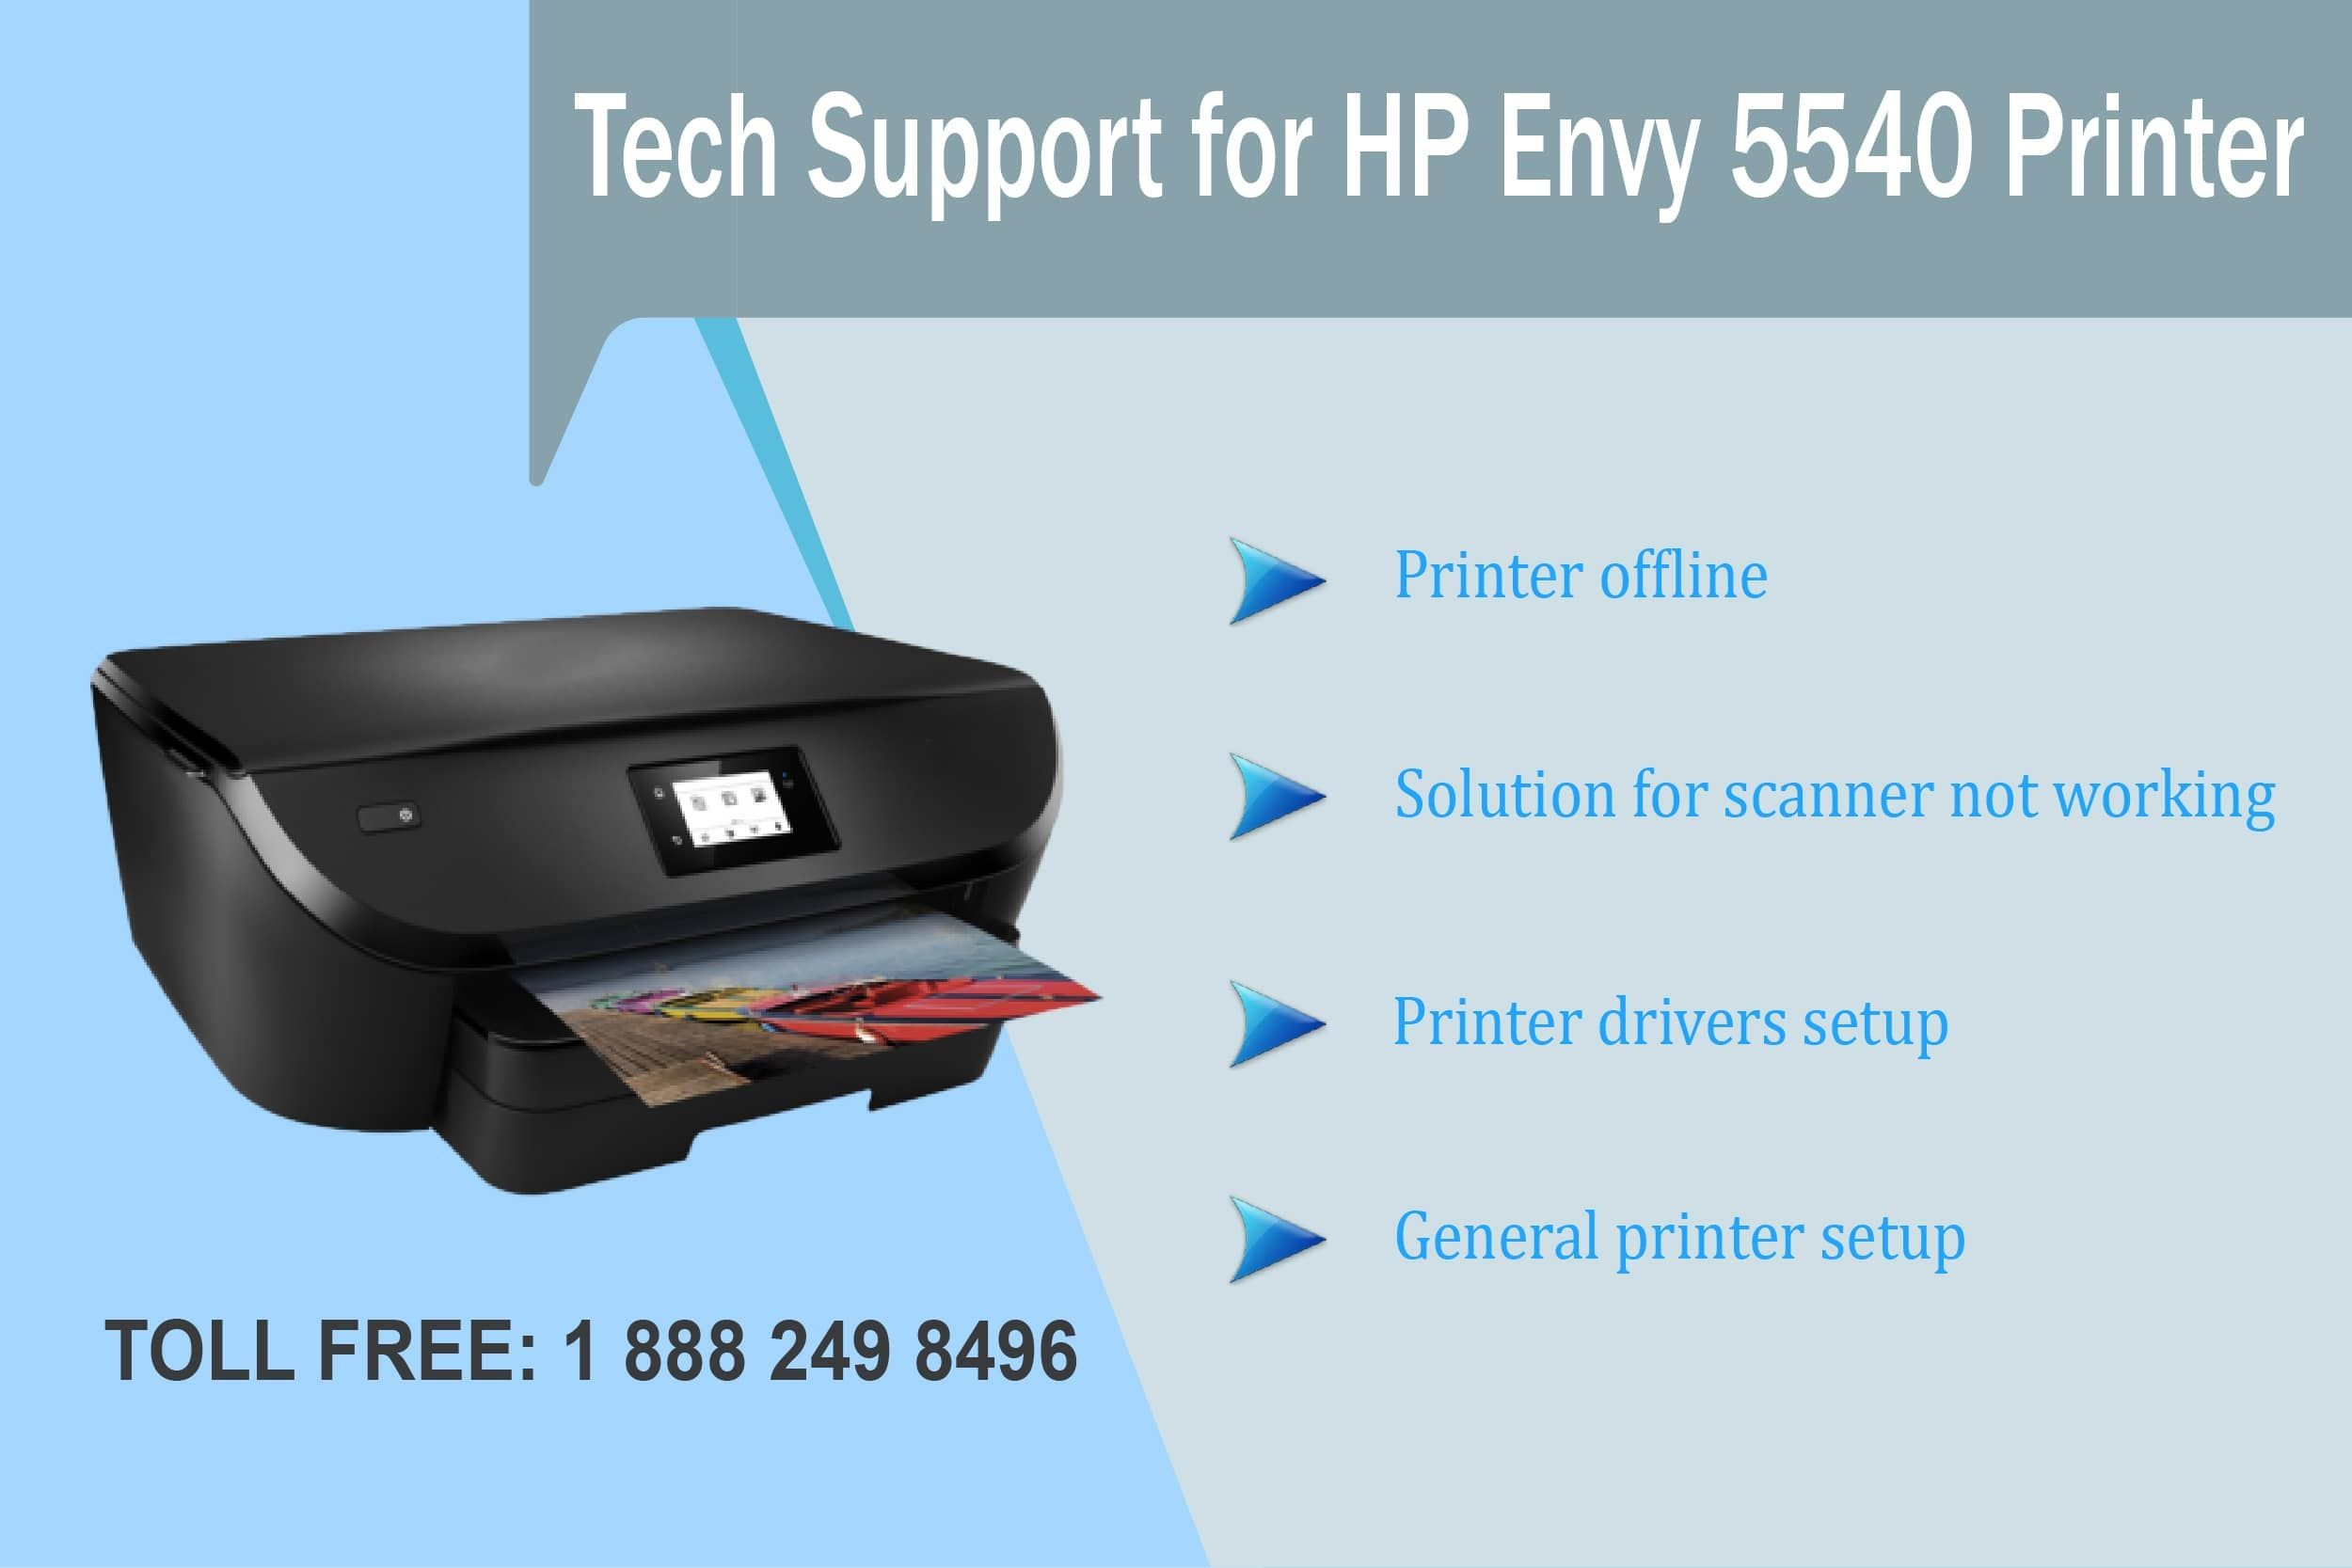 The Hp Envy 5540 Is A Photo And Document Multifunction Printer That